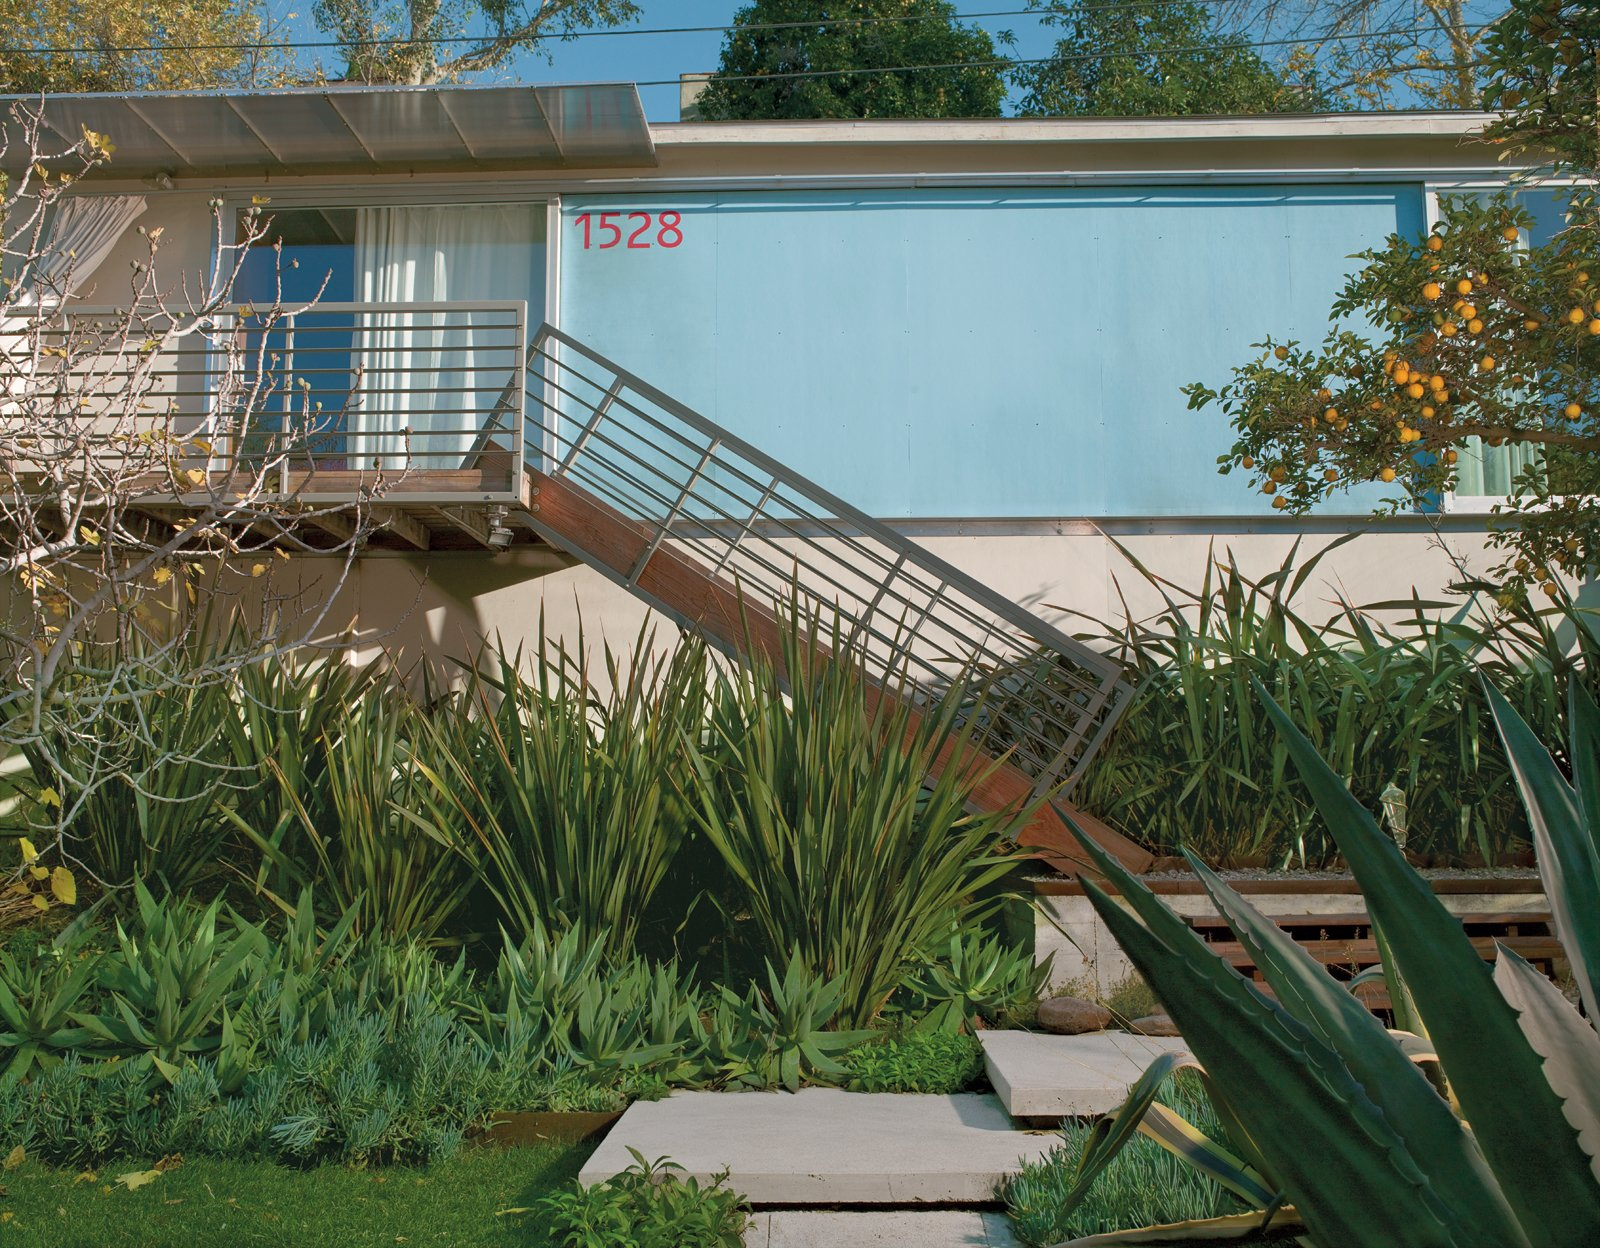 """Good Idea Studio redesigned the front facade with a welded tube steel staircase, an aluminum-and-polycarbonate awning, and fiber cement-board paneling painted """"Pool Party"""" blue.  Photo 4 of 11 in How Good Idea Studio Revamped a 1924 Clapboard House on a $62,000 Budget"""